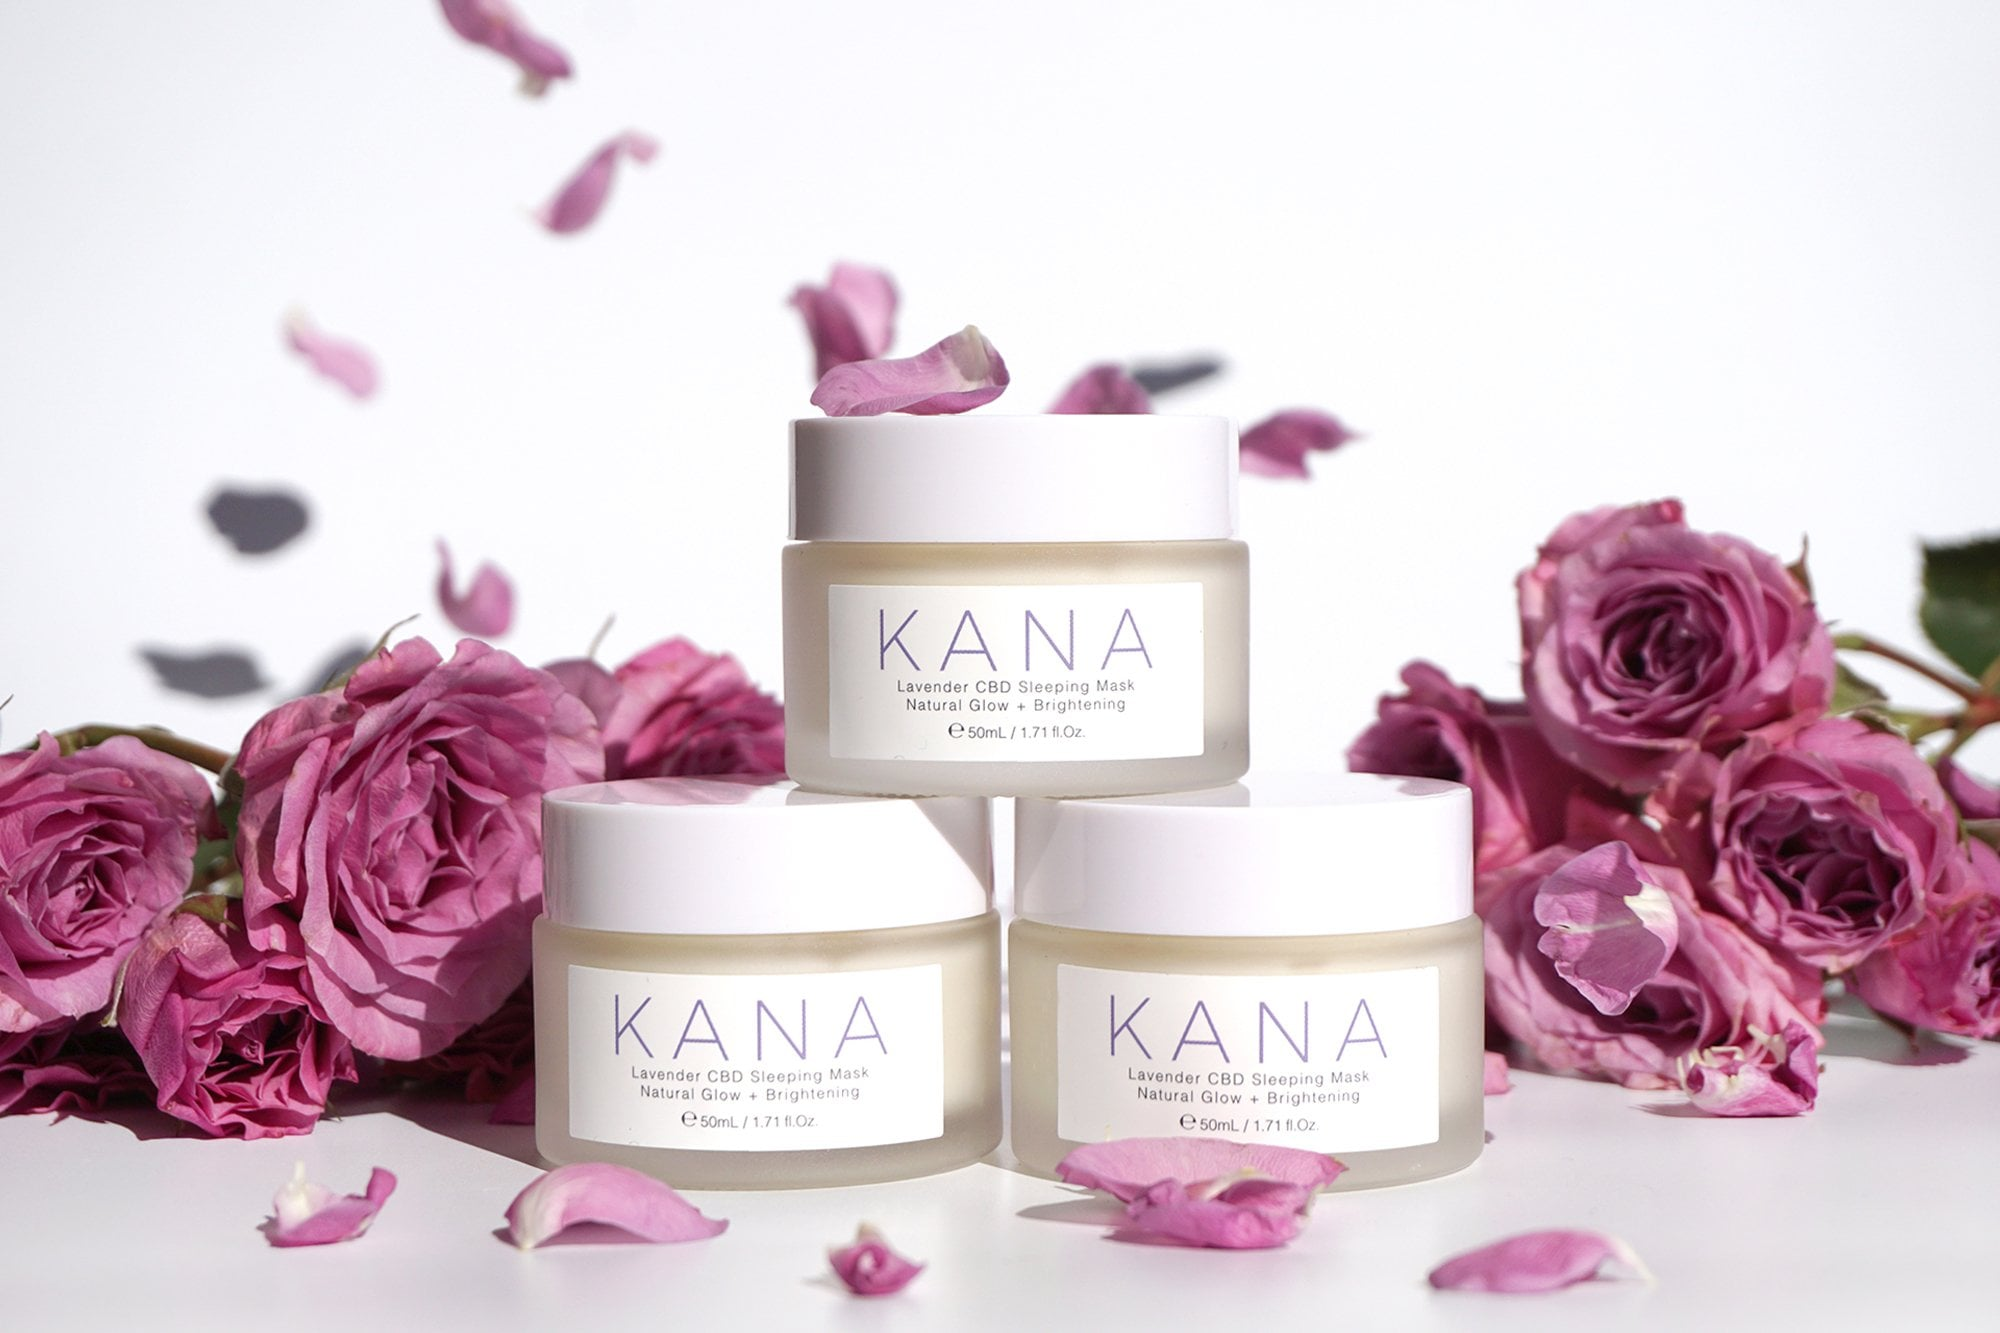 Kana's Lavender CBD Sleeping Mask